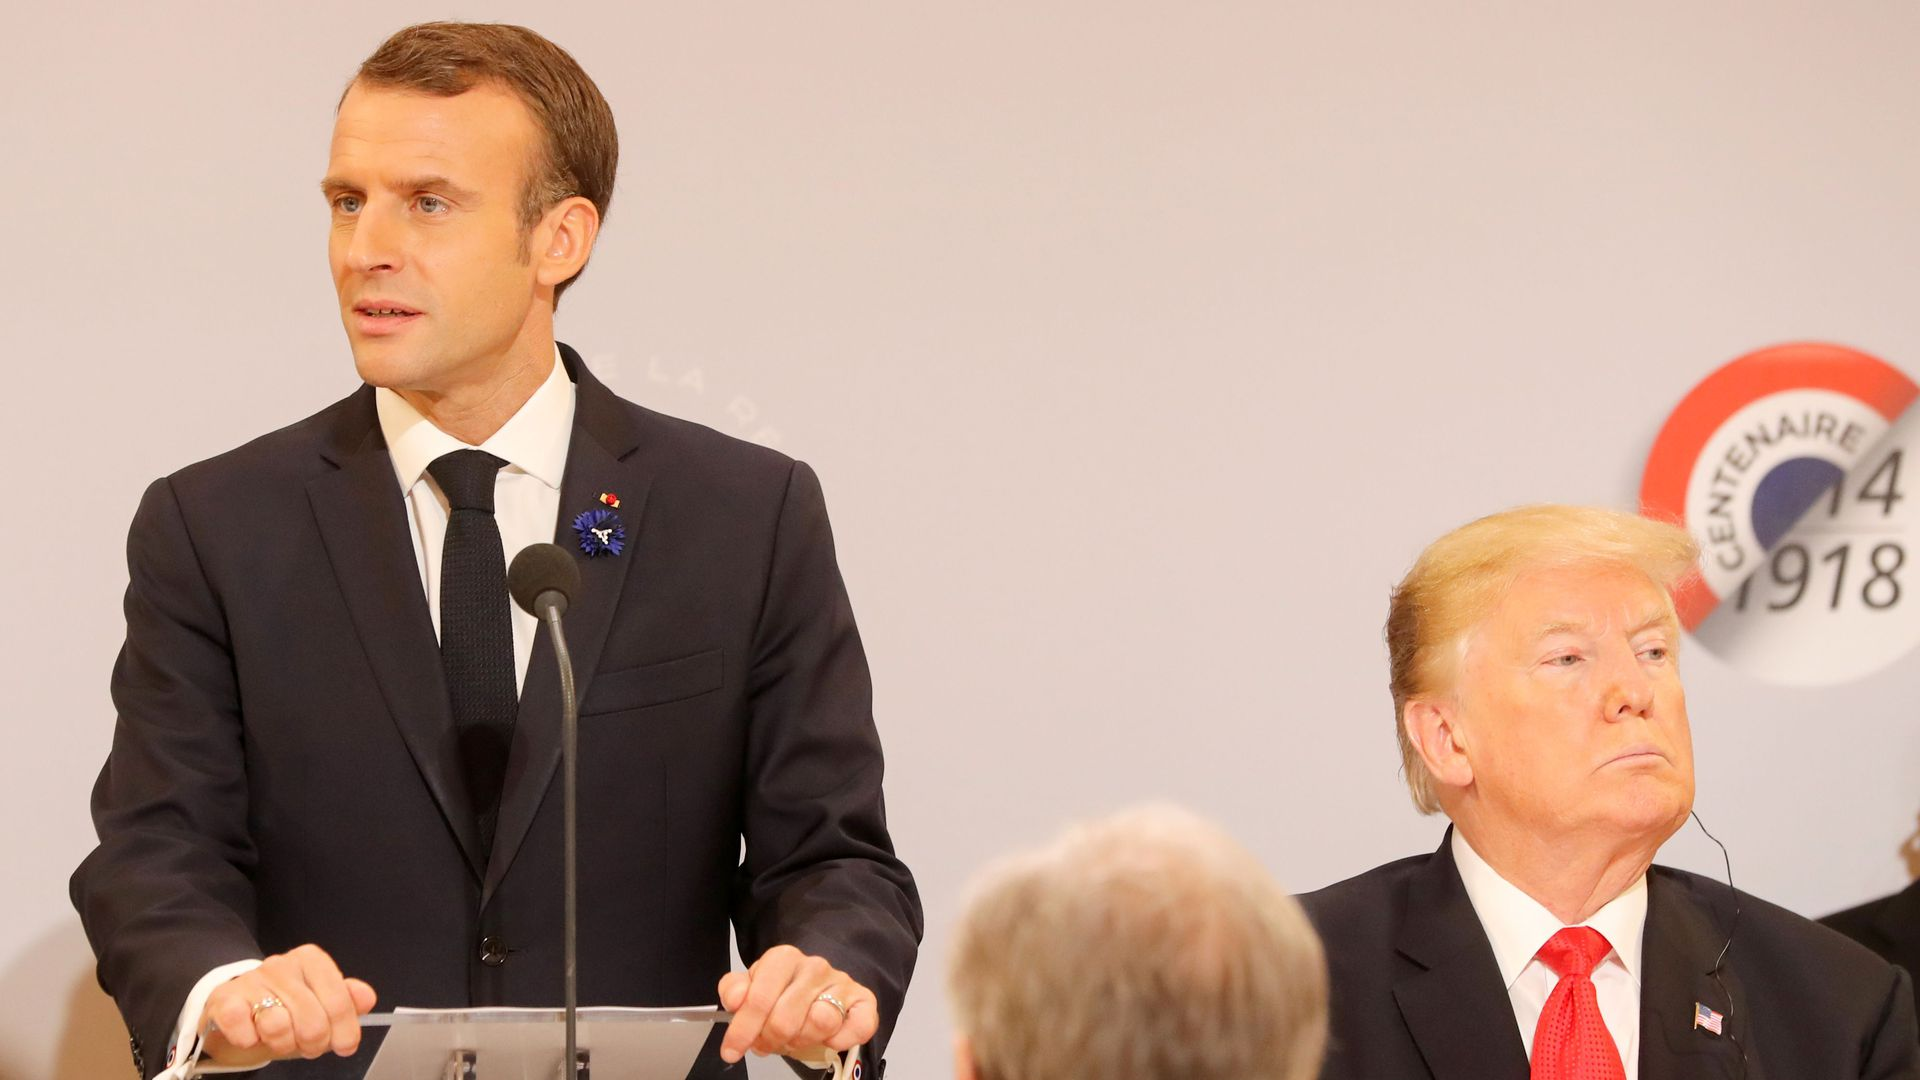 Photo of Trump and Macron looking in opposite directions.